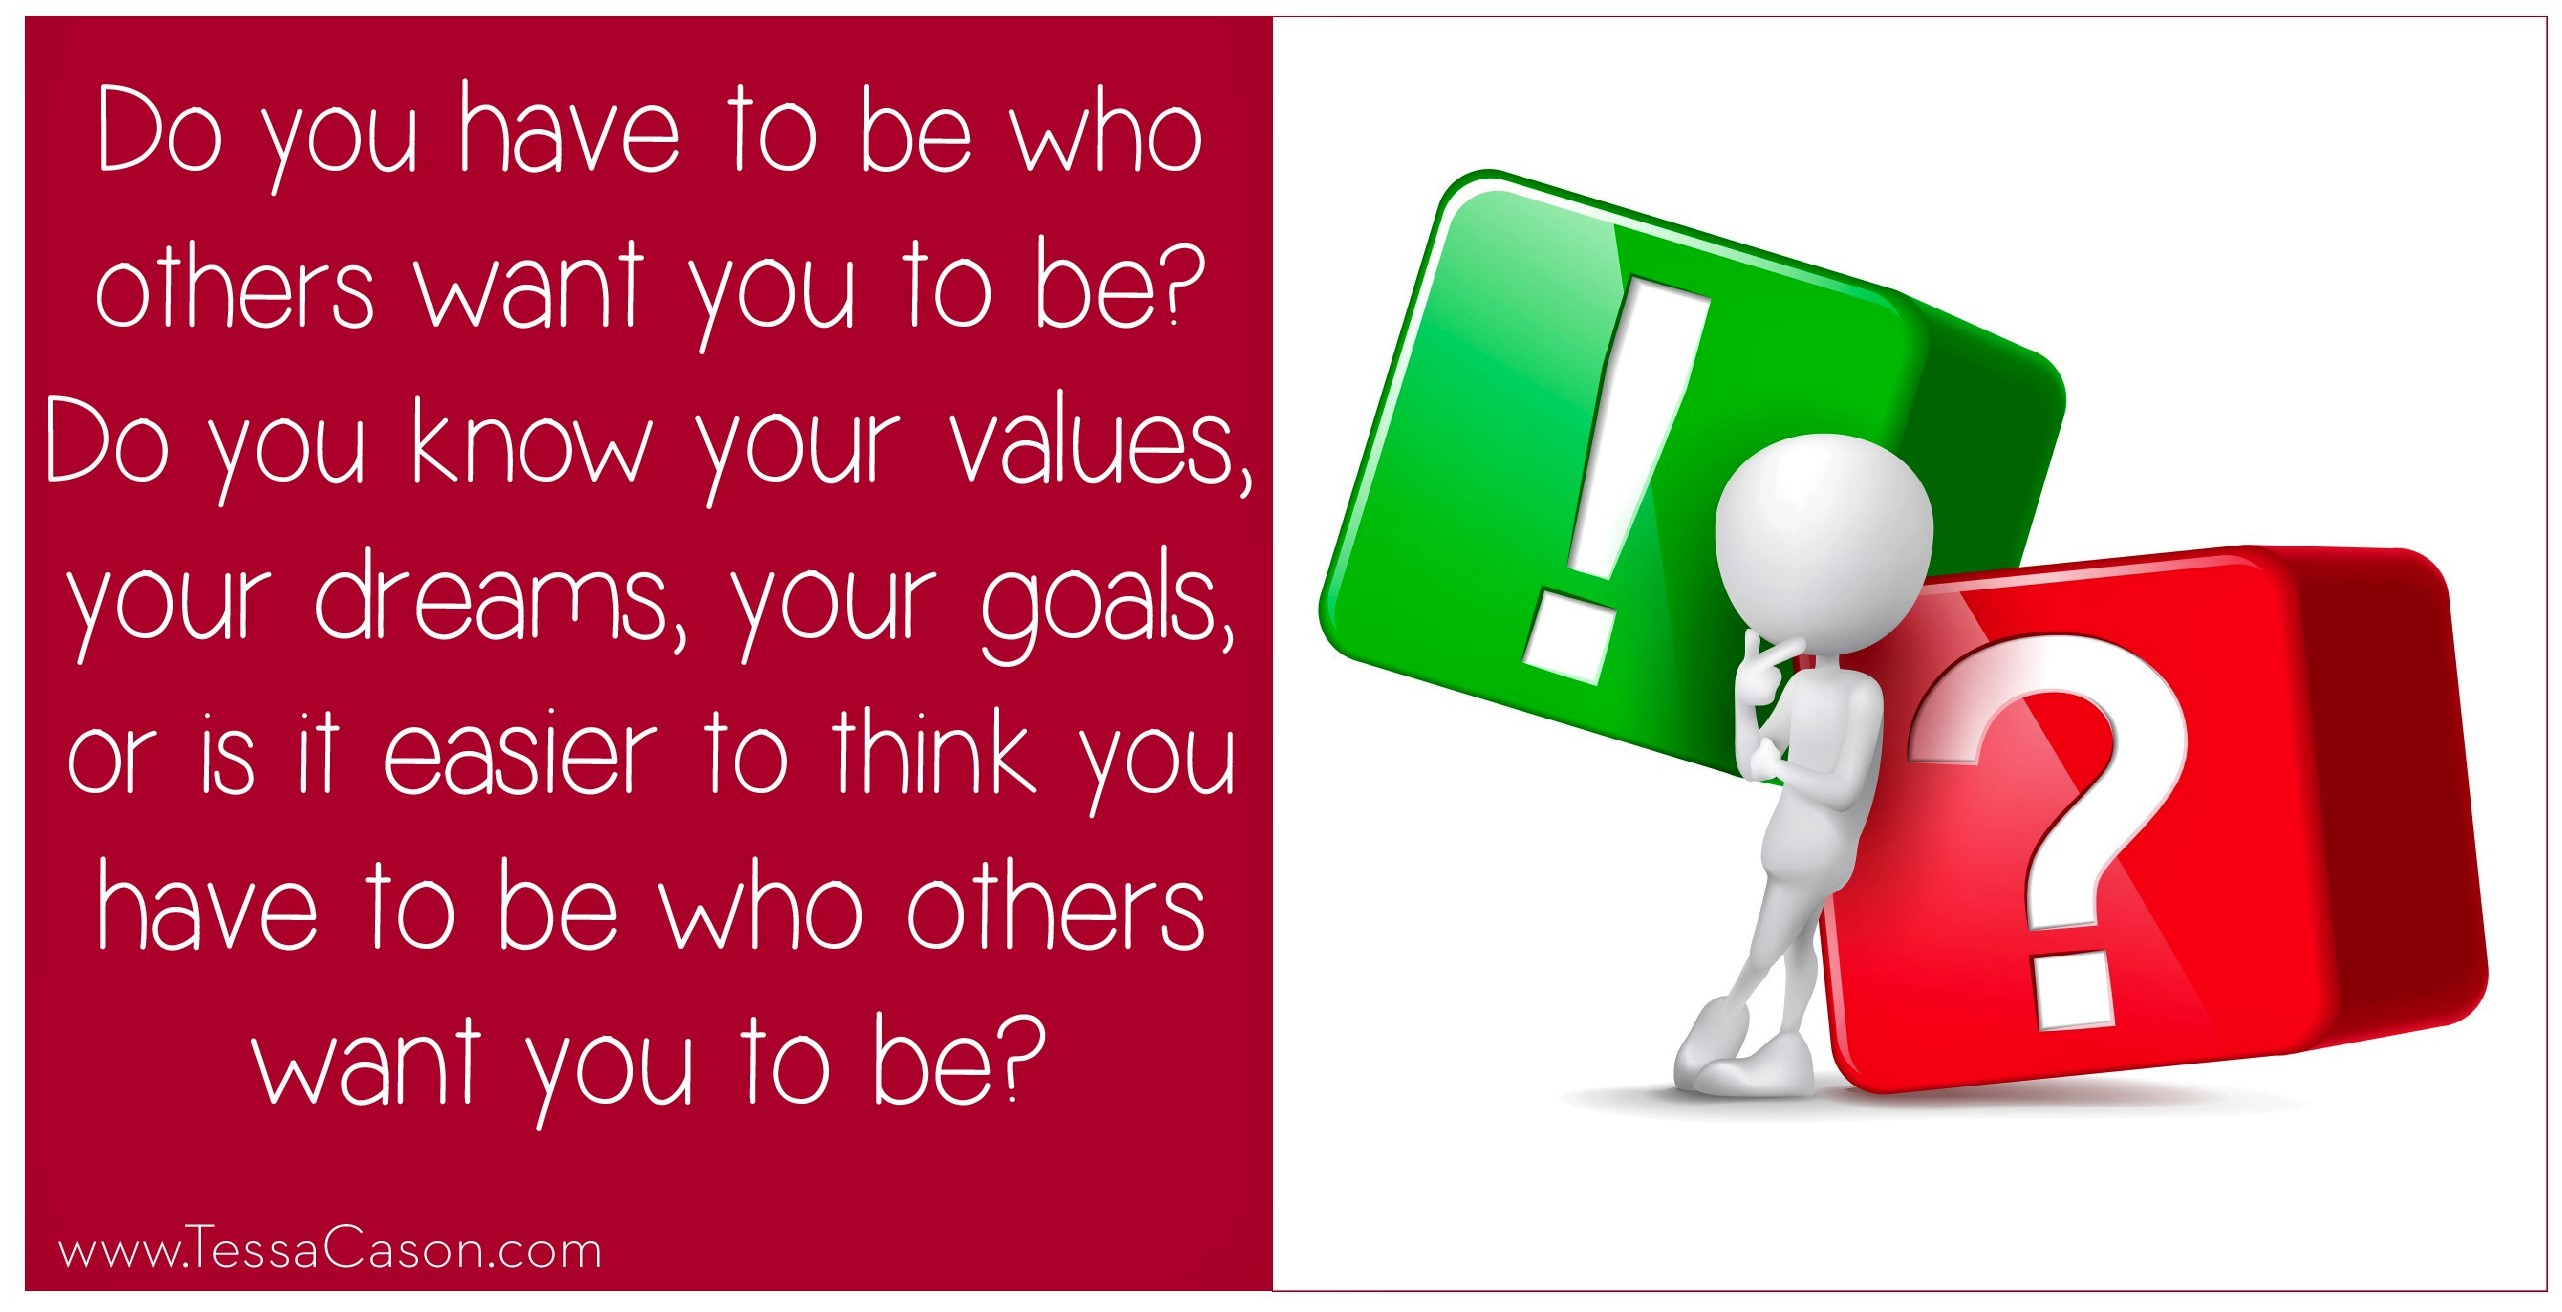 Do you have to be who others want you to be